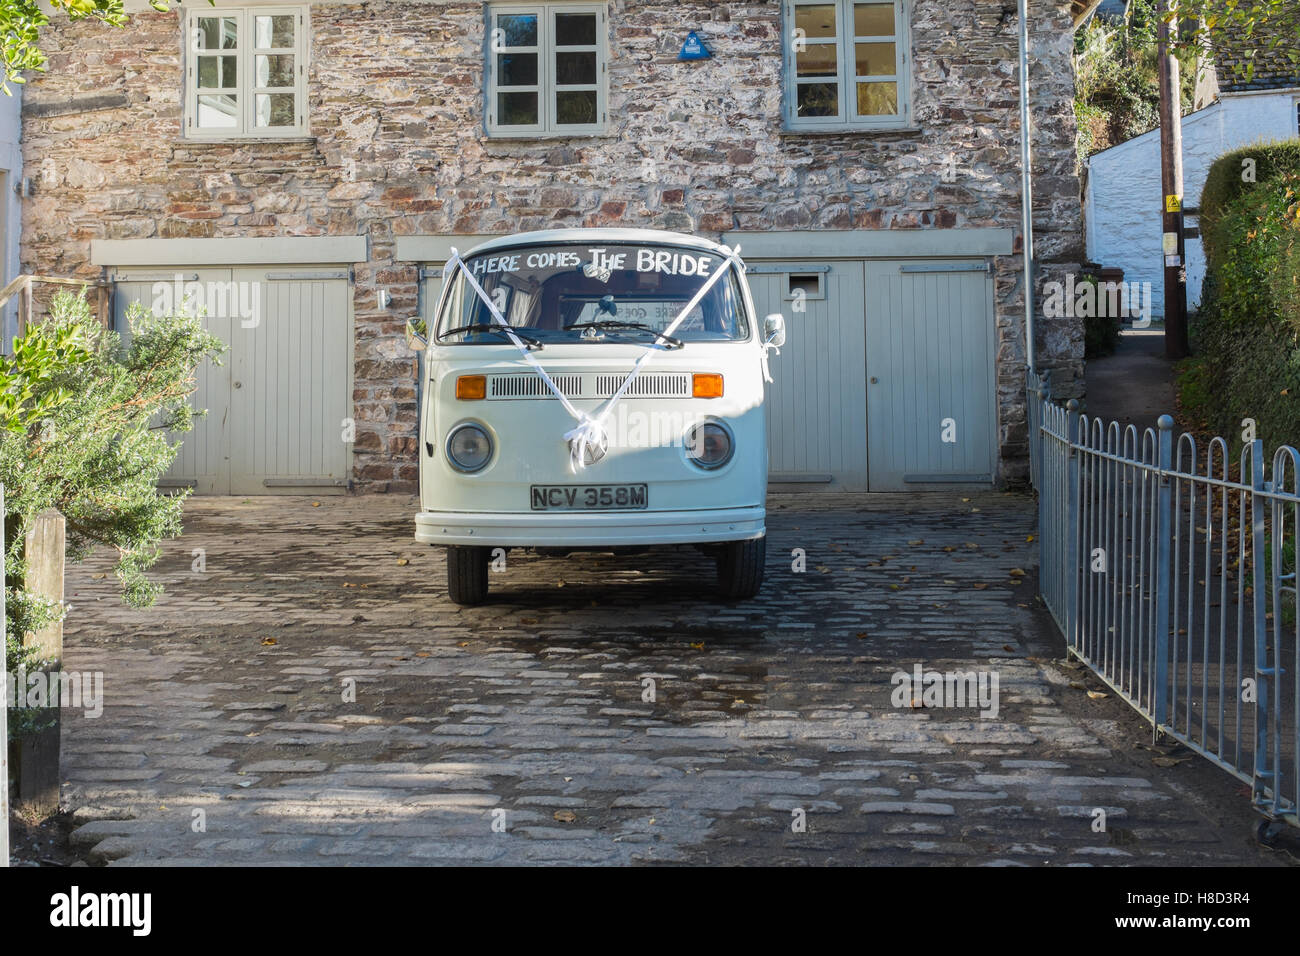 VW campervan decorated as a wedding car - Stock Image